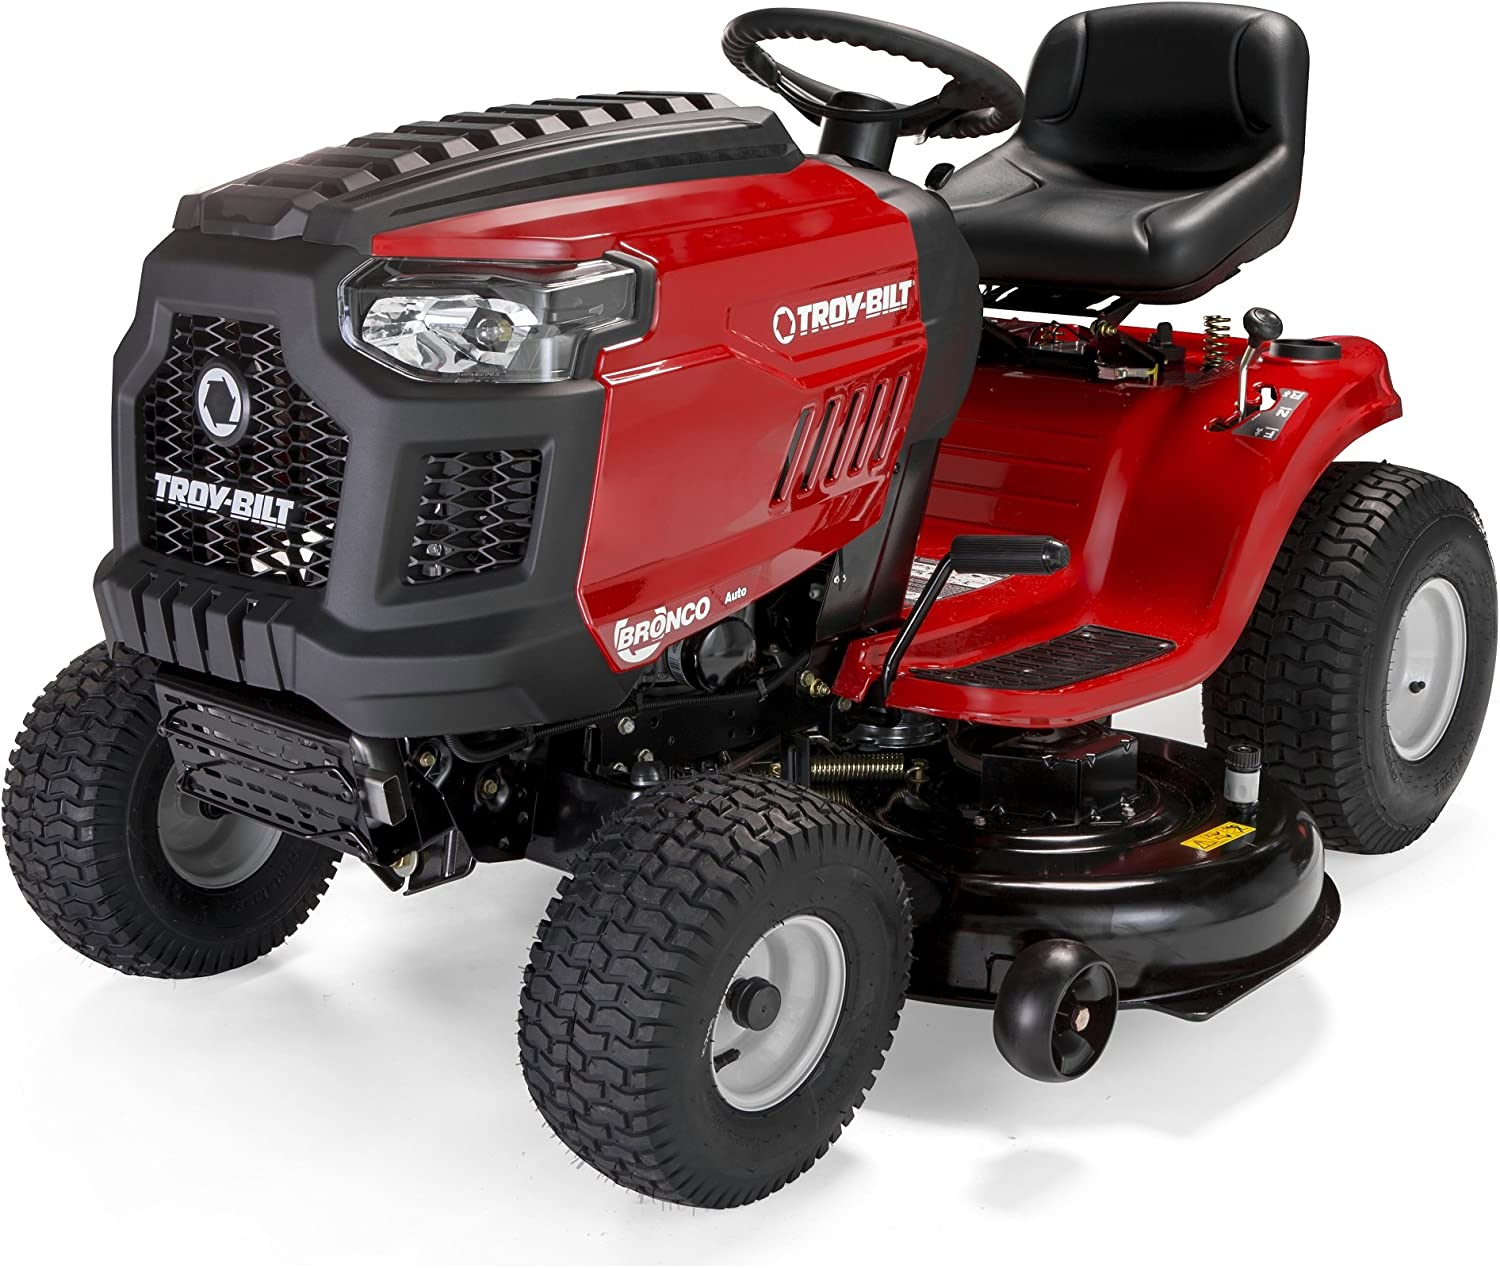 Troy Bilt 540cc (Best Briggs & Stratton Lawn Mower)